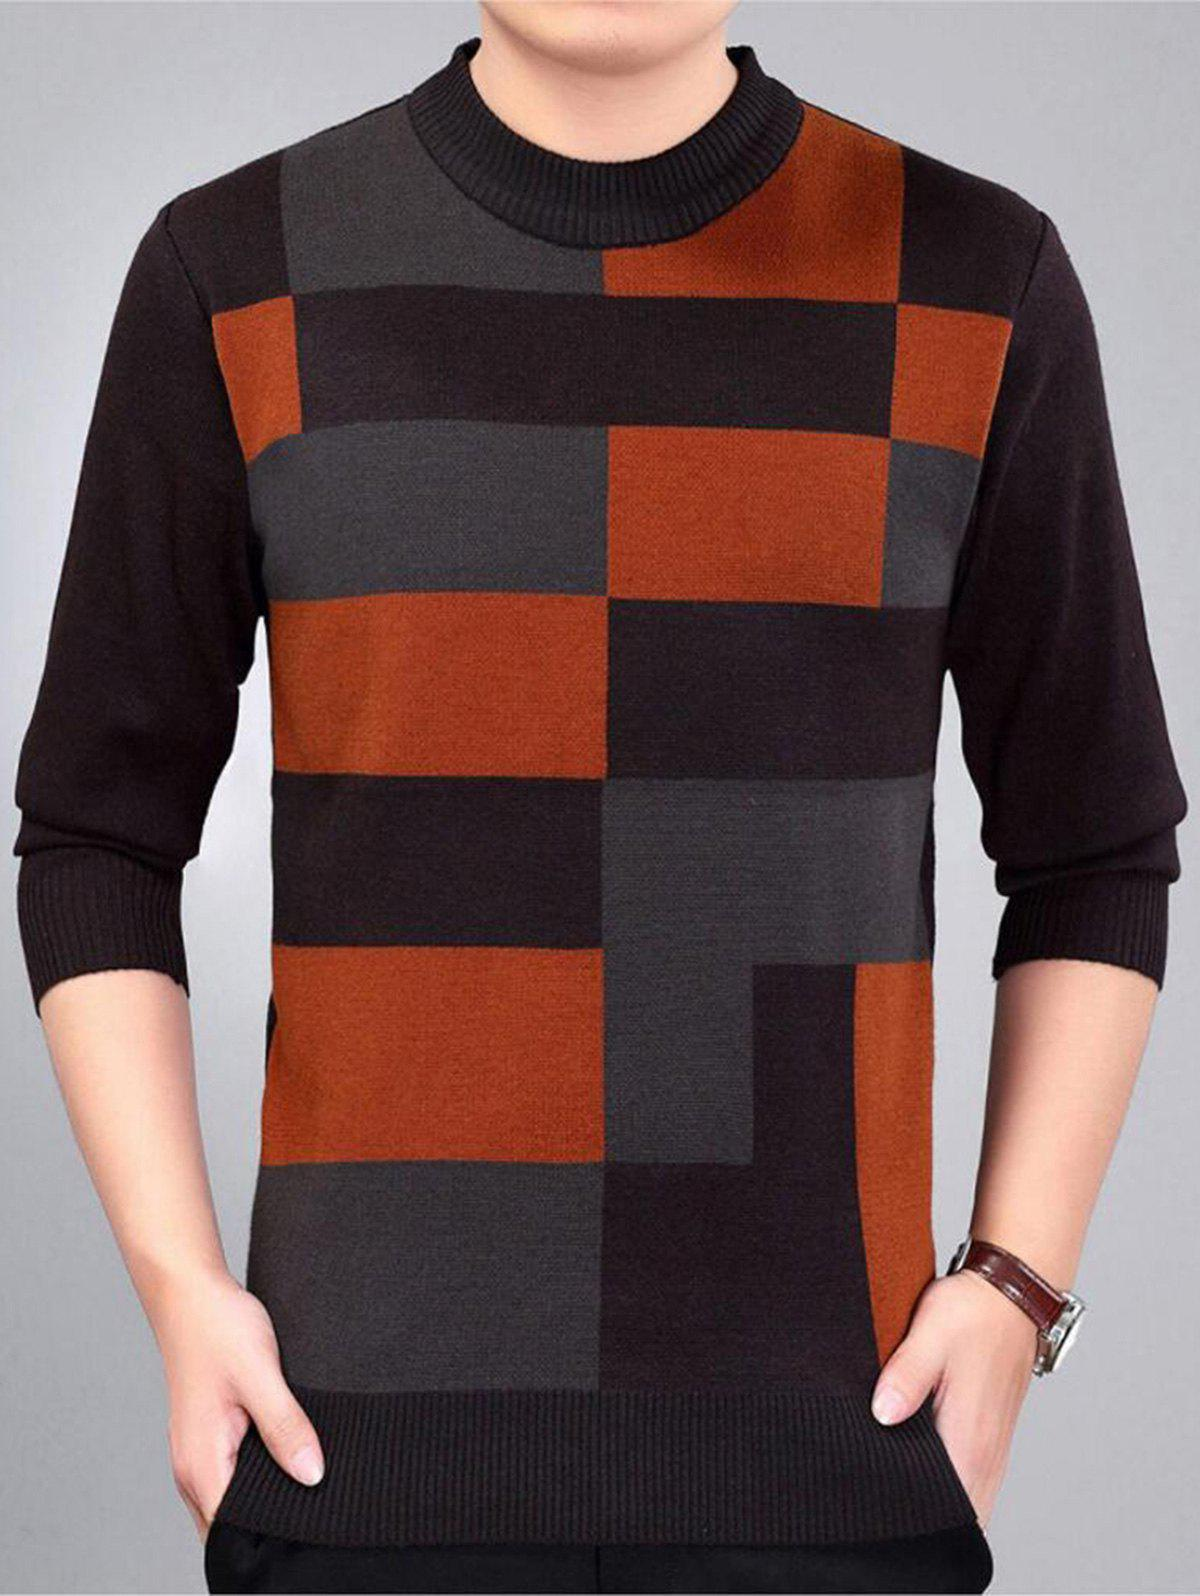 Check Pattern Crew Neck Jumper - Rouge vineux 3XL